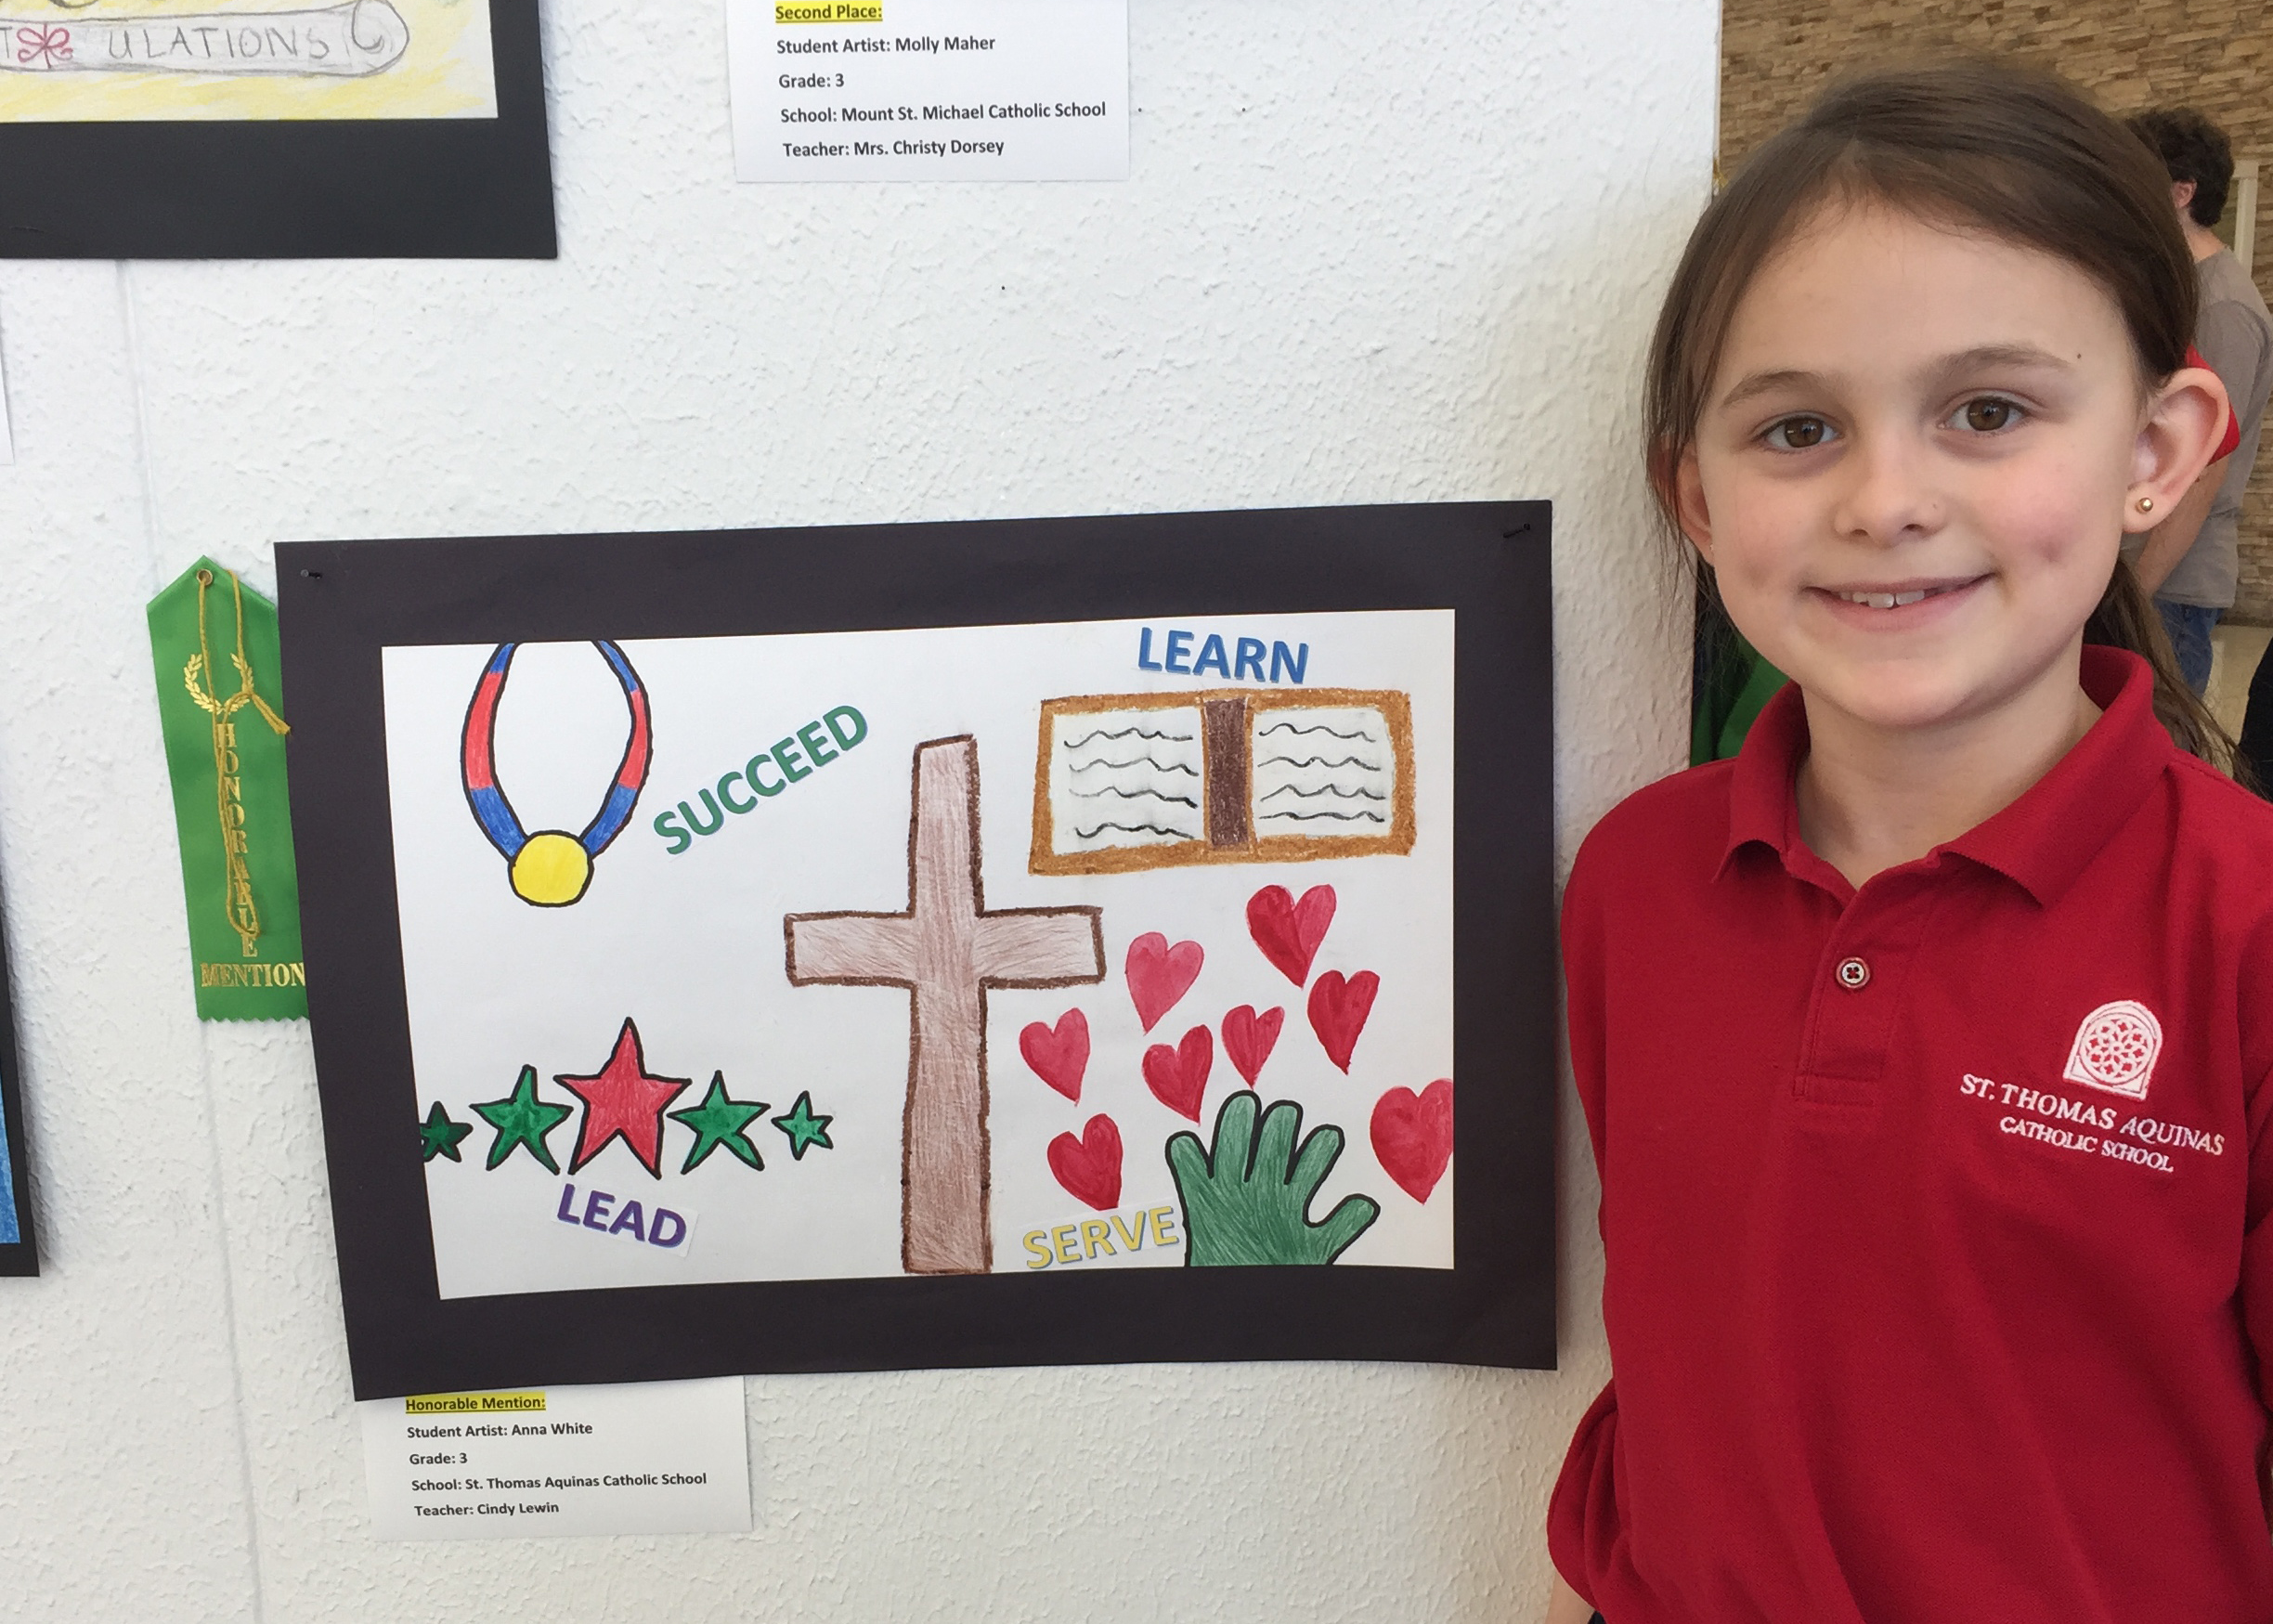 Honorable Mention at Catholic School Week Art Contest